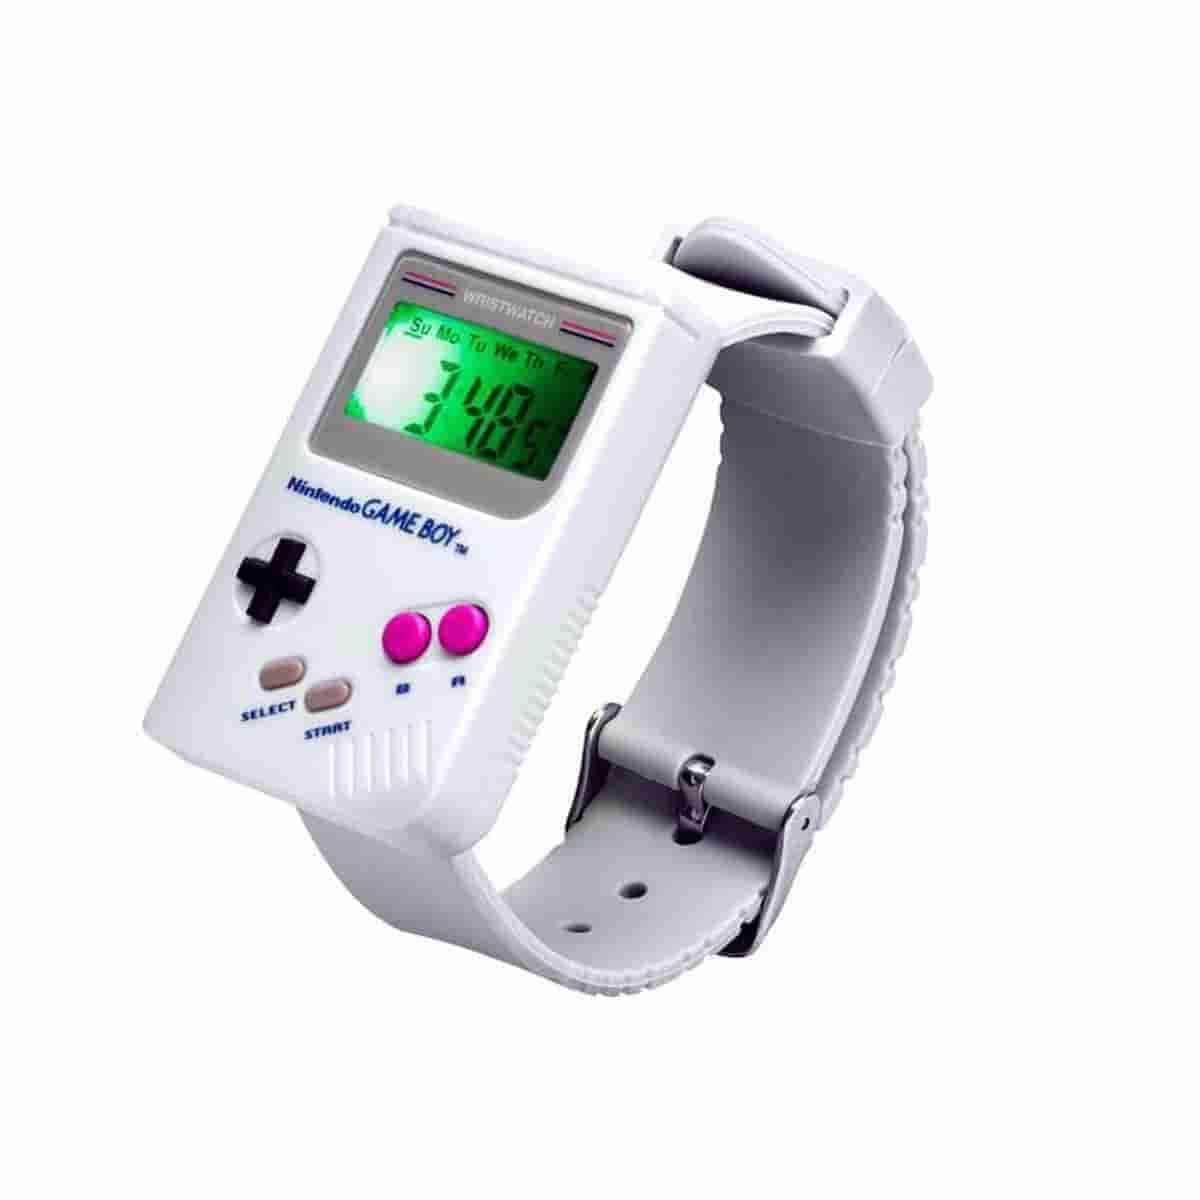 Gameboy Watch Officially Licensed Nintendo Merchandise - IamRetro.com